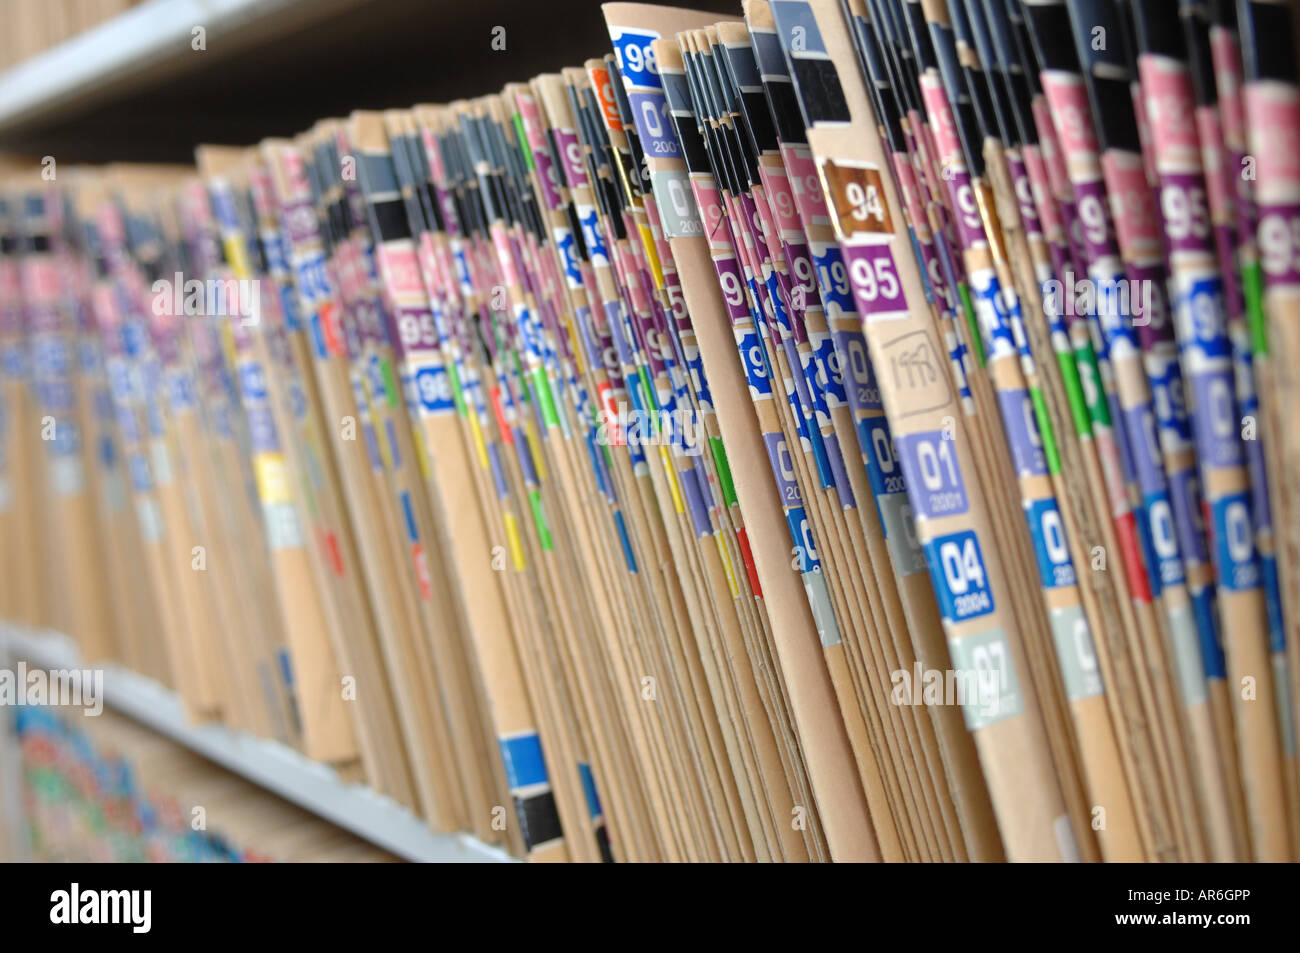 Hospital patient files - Stock Image